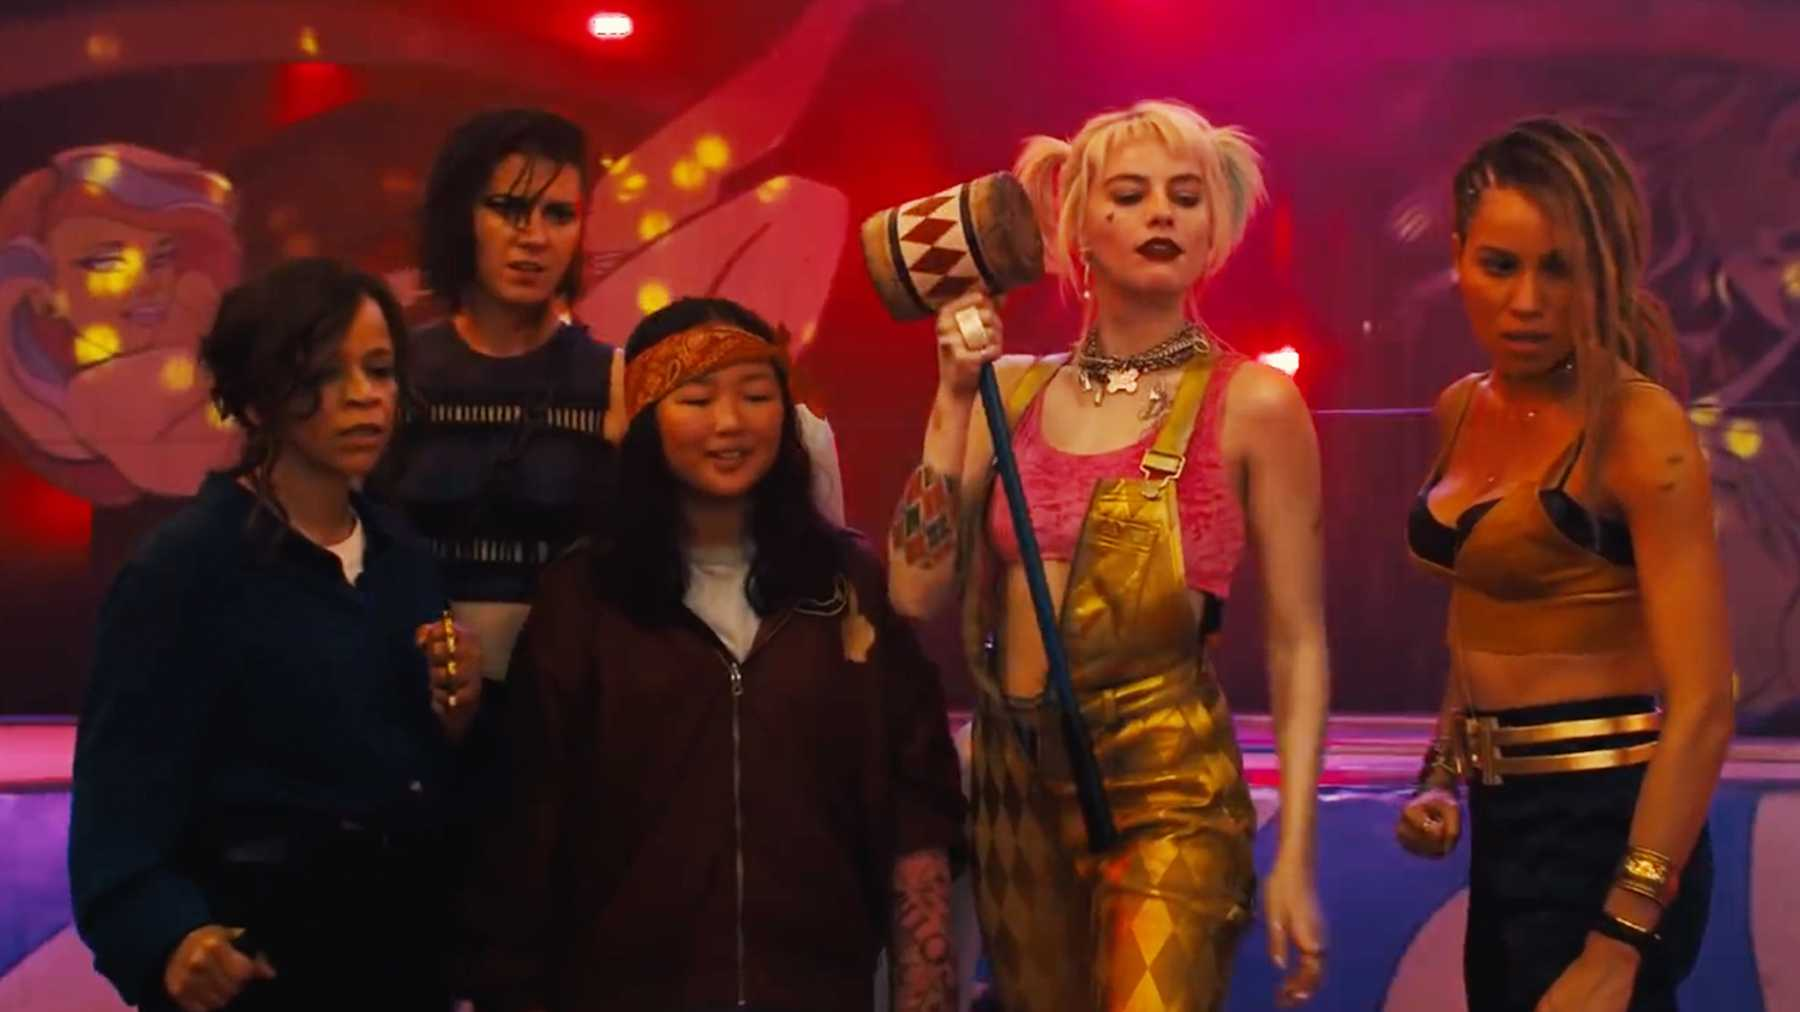 Bird Of Prey Movie Review: Everything Pales In Comparison To Margot Robbie's Class Act As The Vibrant Harley Quinn, Even Her Girl Gang